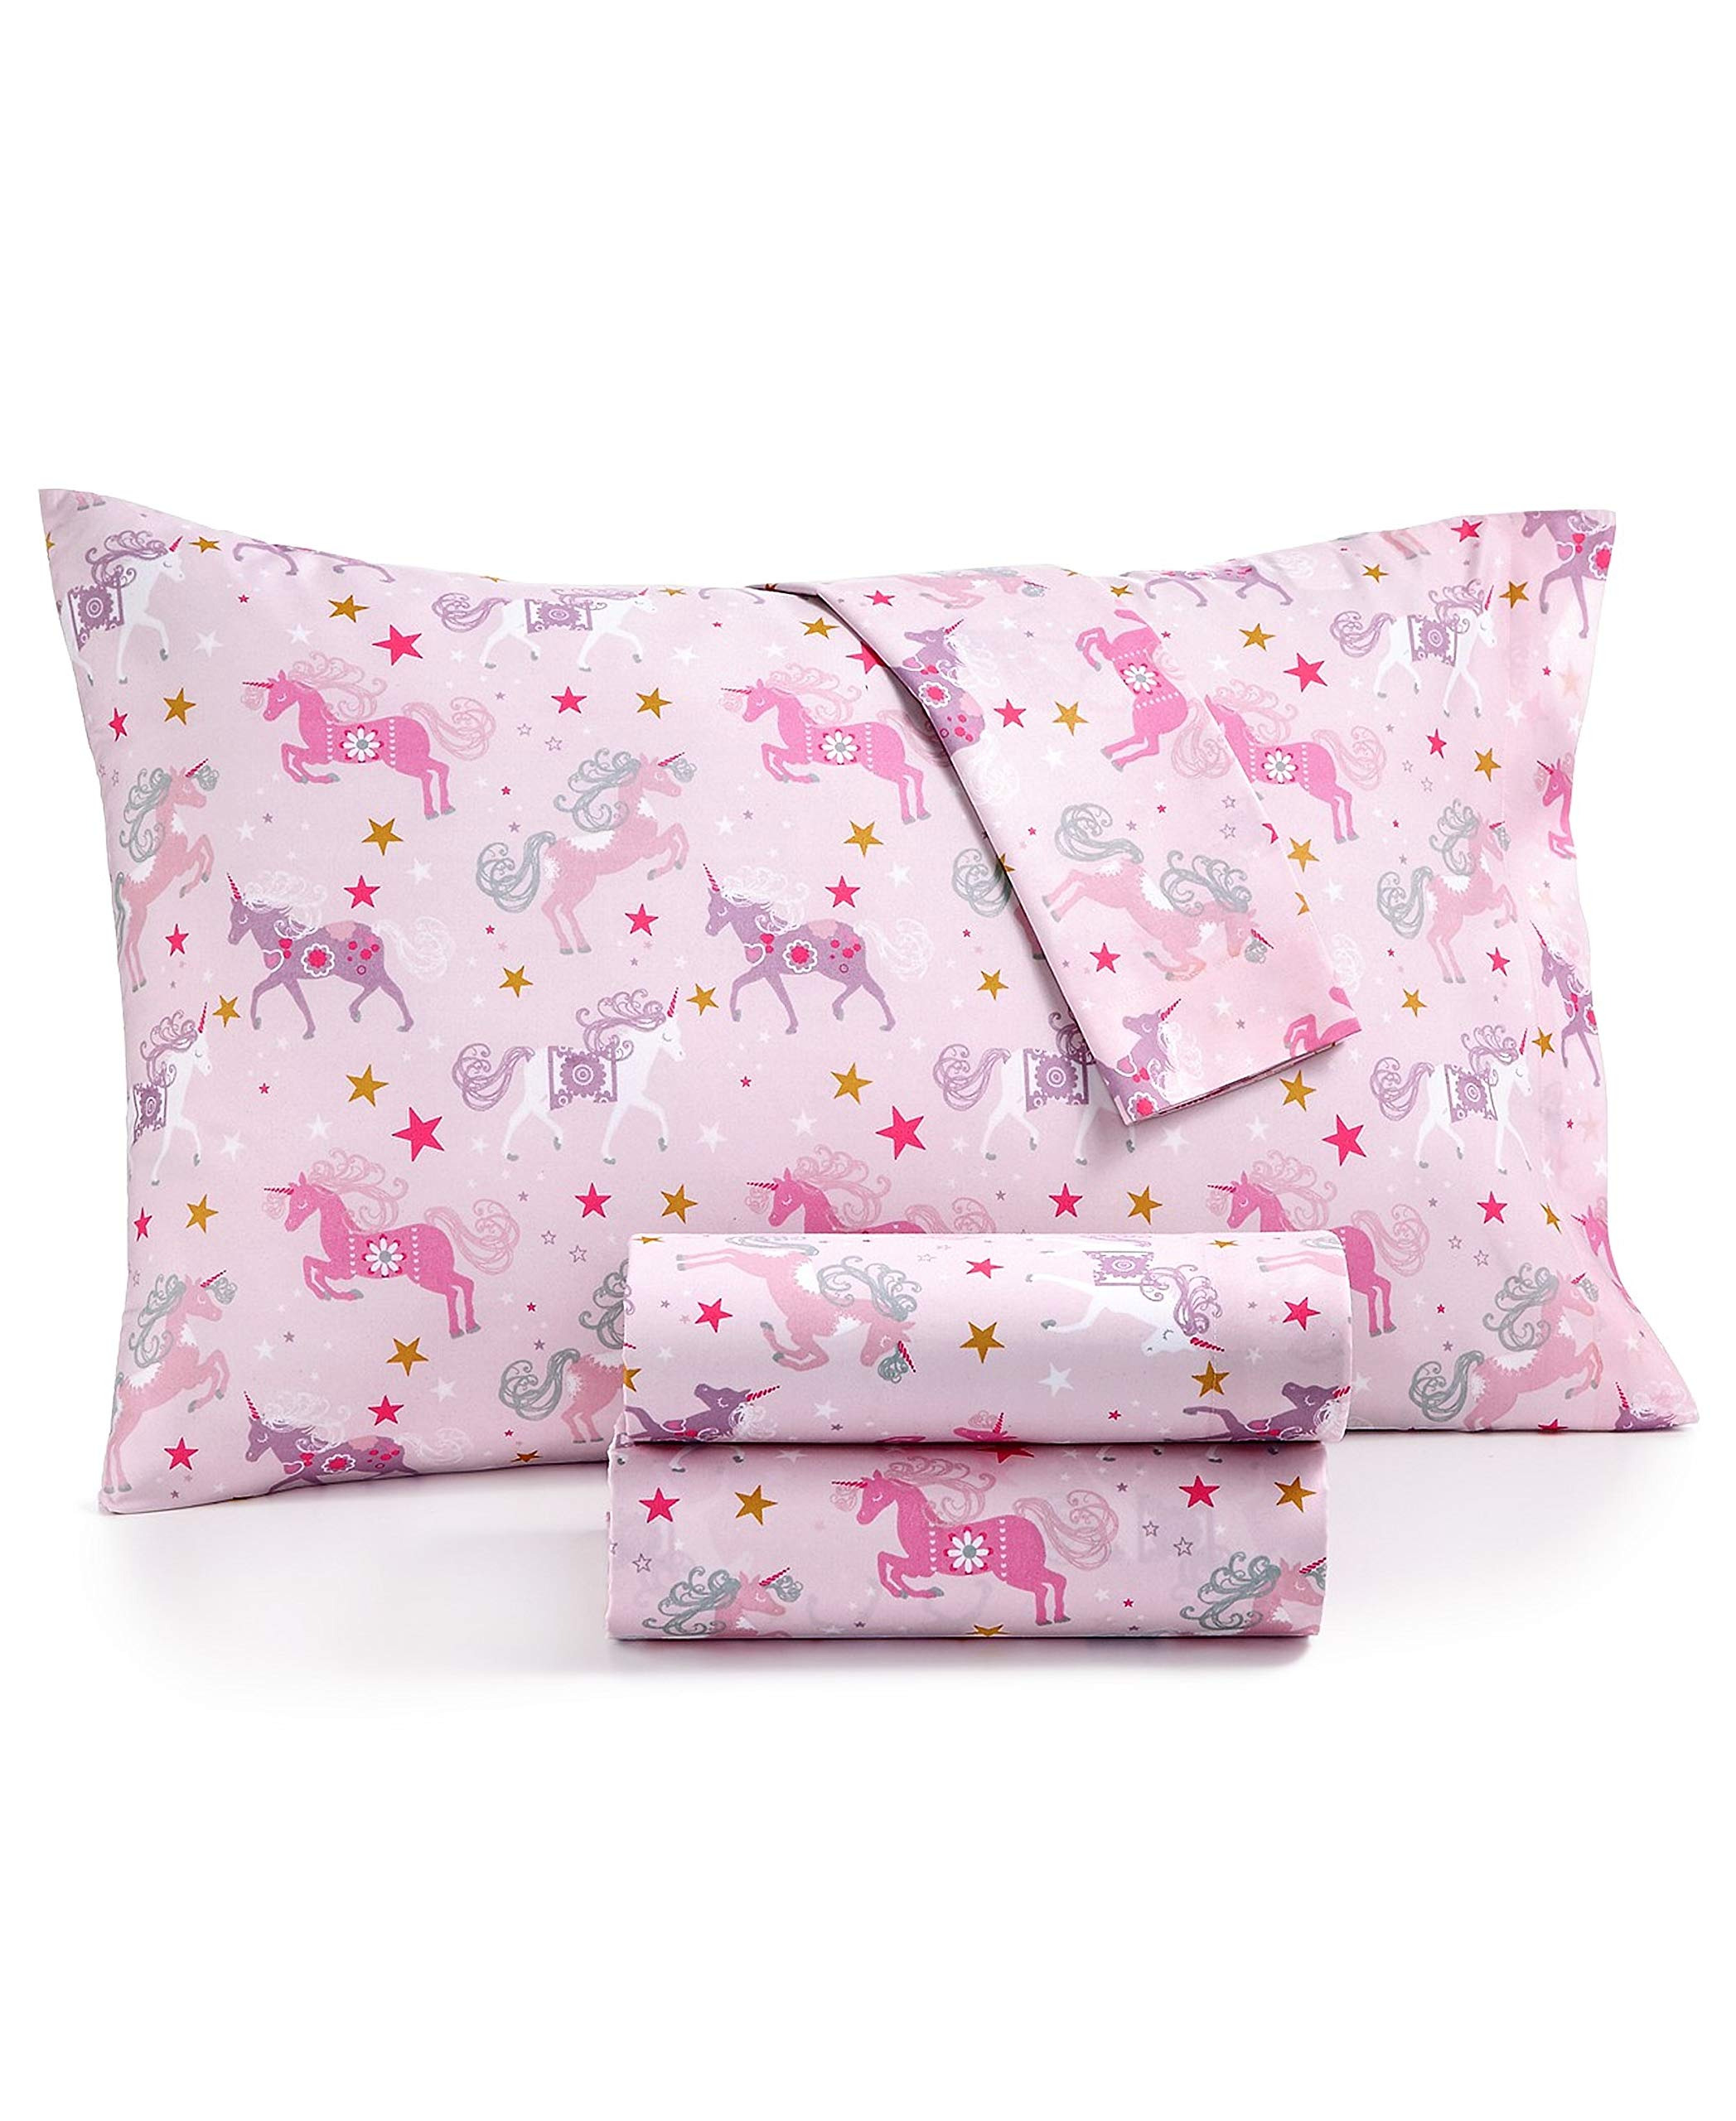 Kids Zone Ornate Pink Unicorn Sheets with Gold and White Star Print Purple and Magenta on Light Pink (Twin)